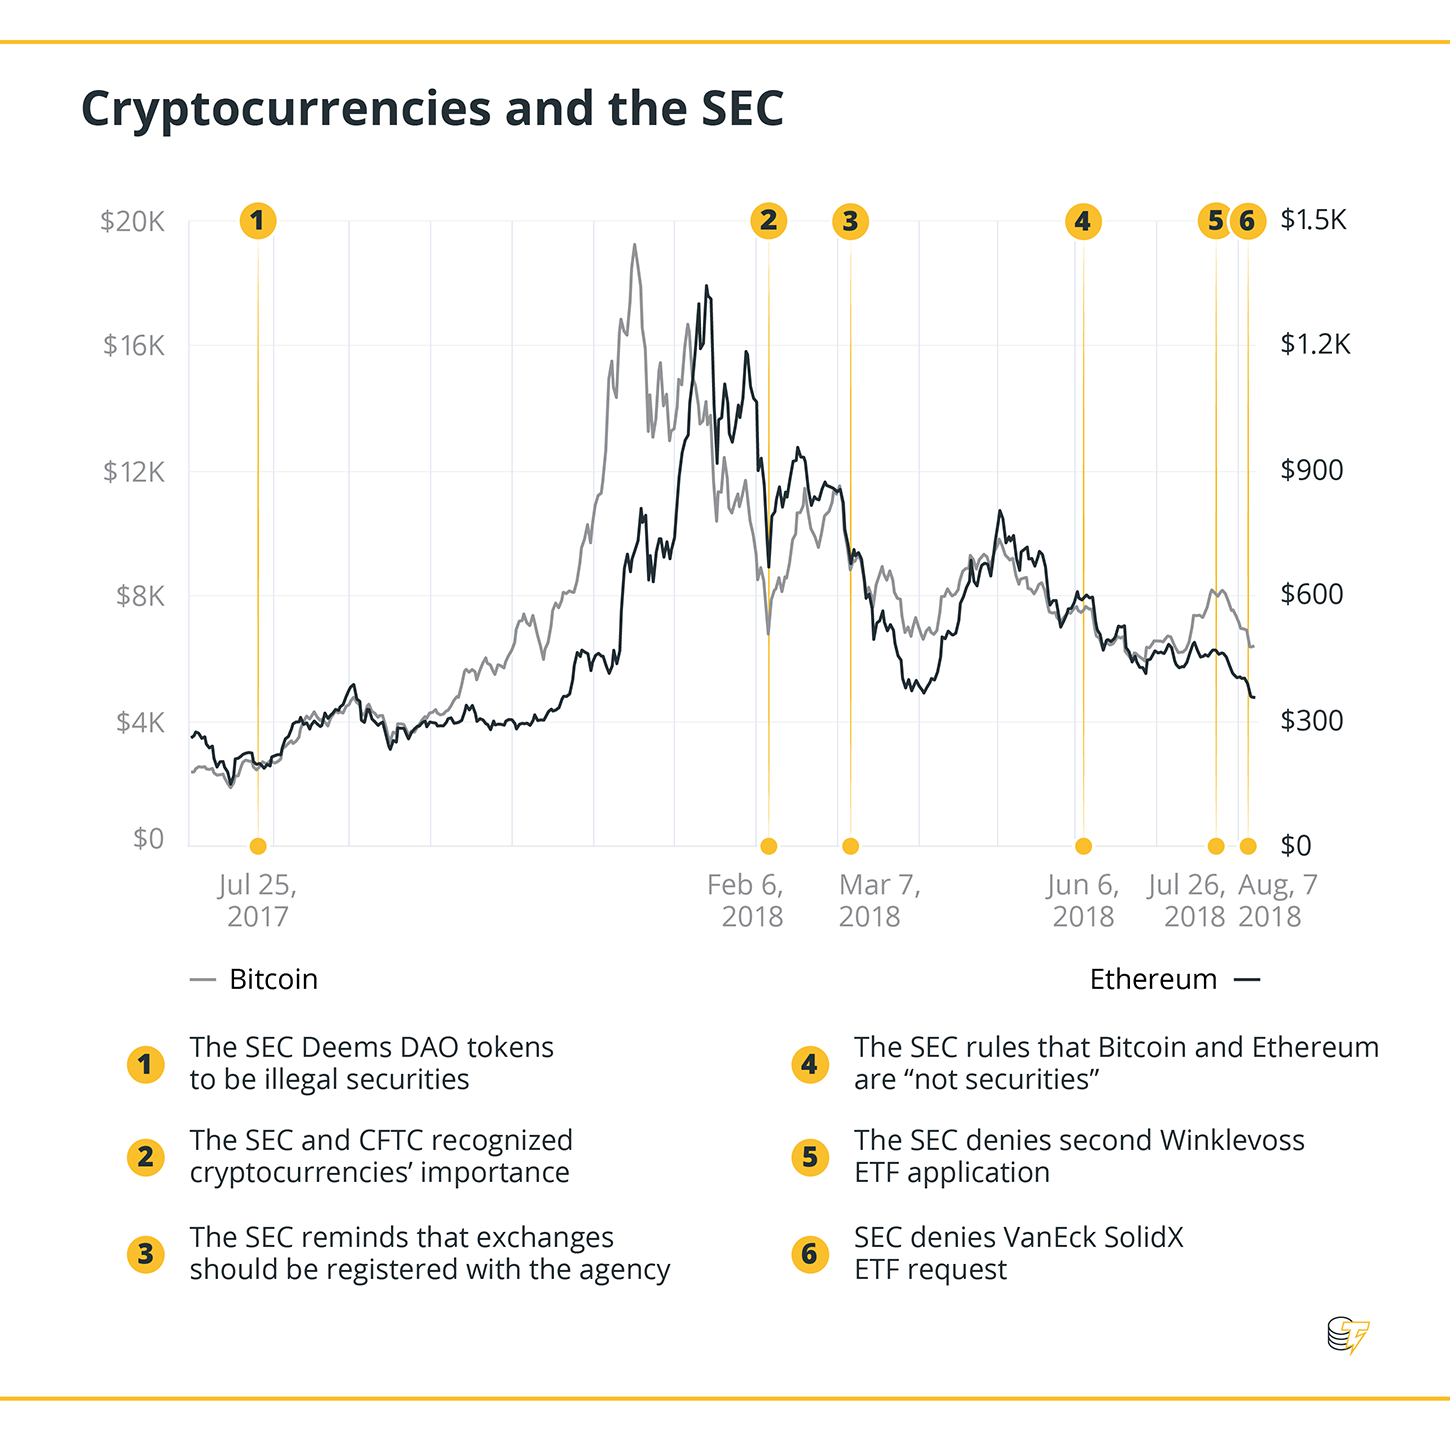 Cryptocurrencies and the SEC